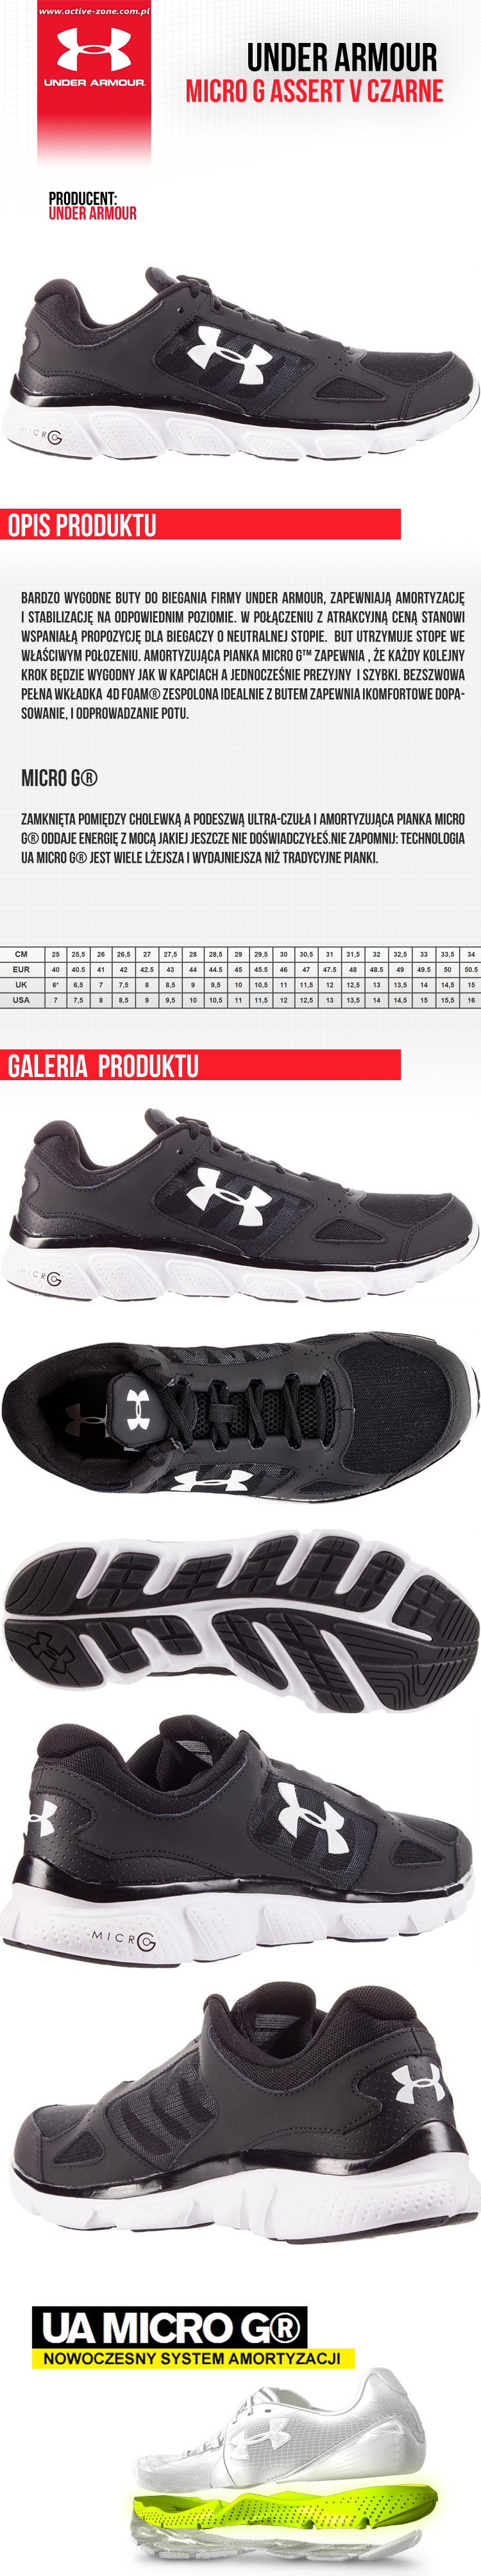 Under Armour MICRO G ASSERT V Czarne(1)